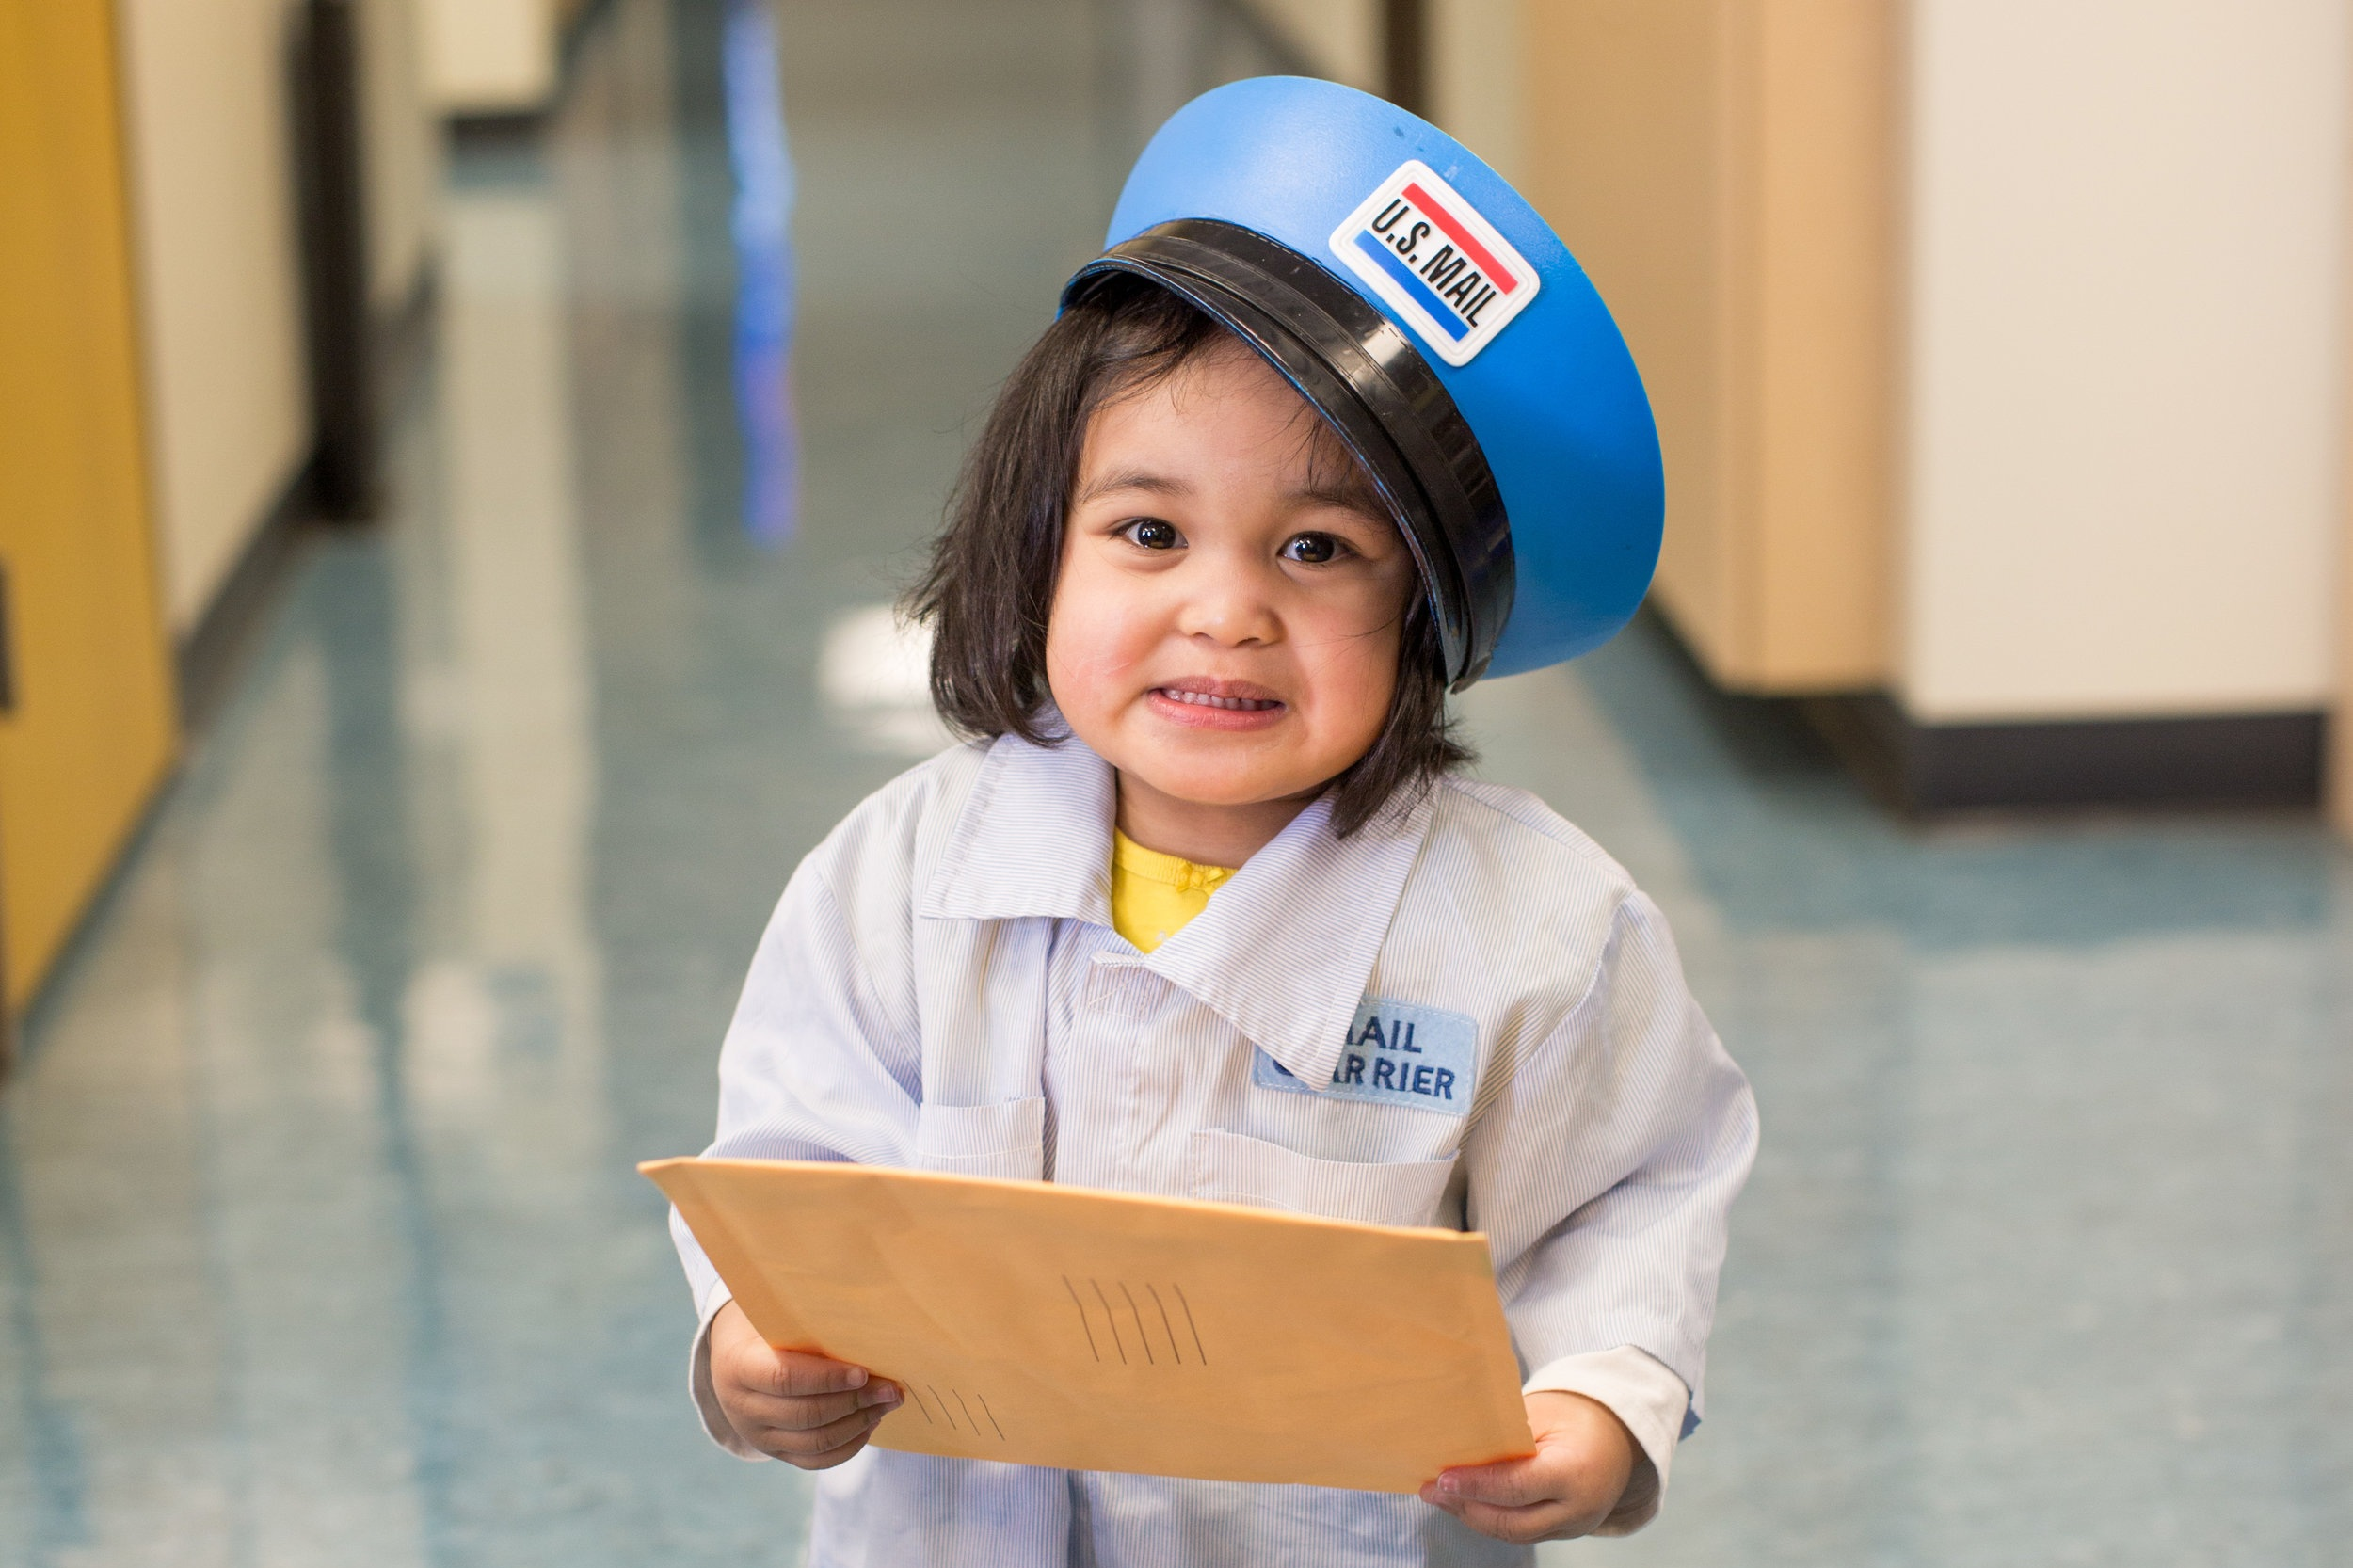 Cultivating a Healthier Environment for Children and Staff - The maintenance and operations team has the opportunity to set a new standard for children's health in early childhood education.